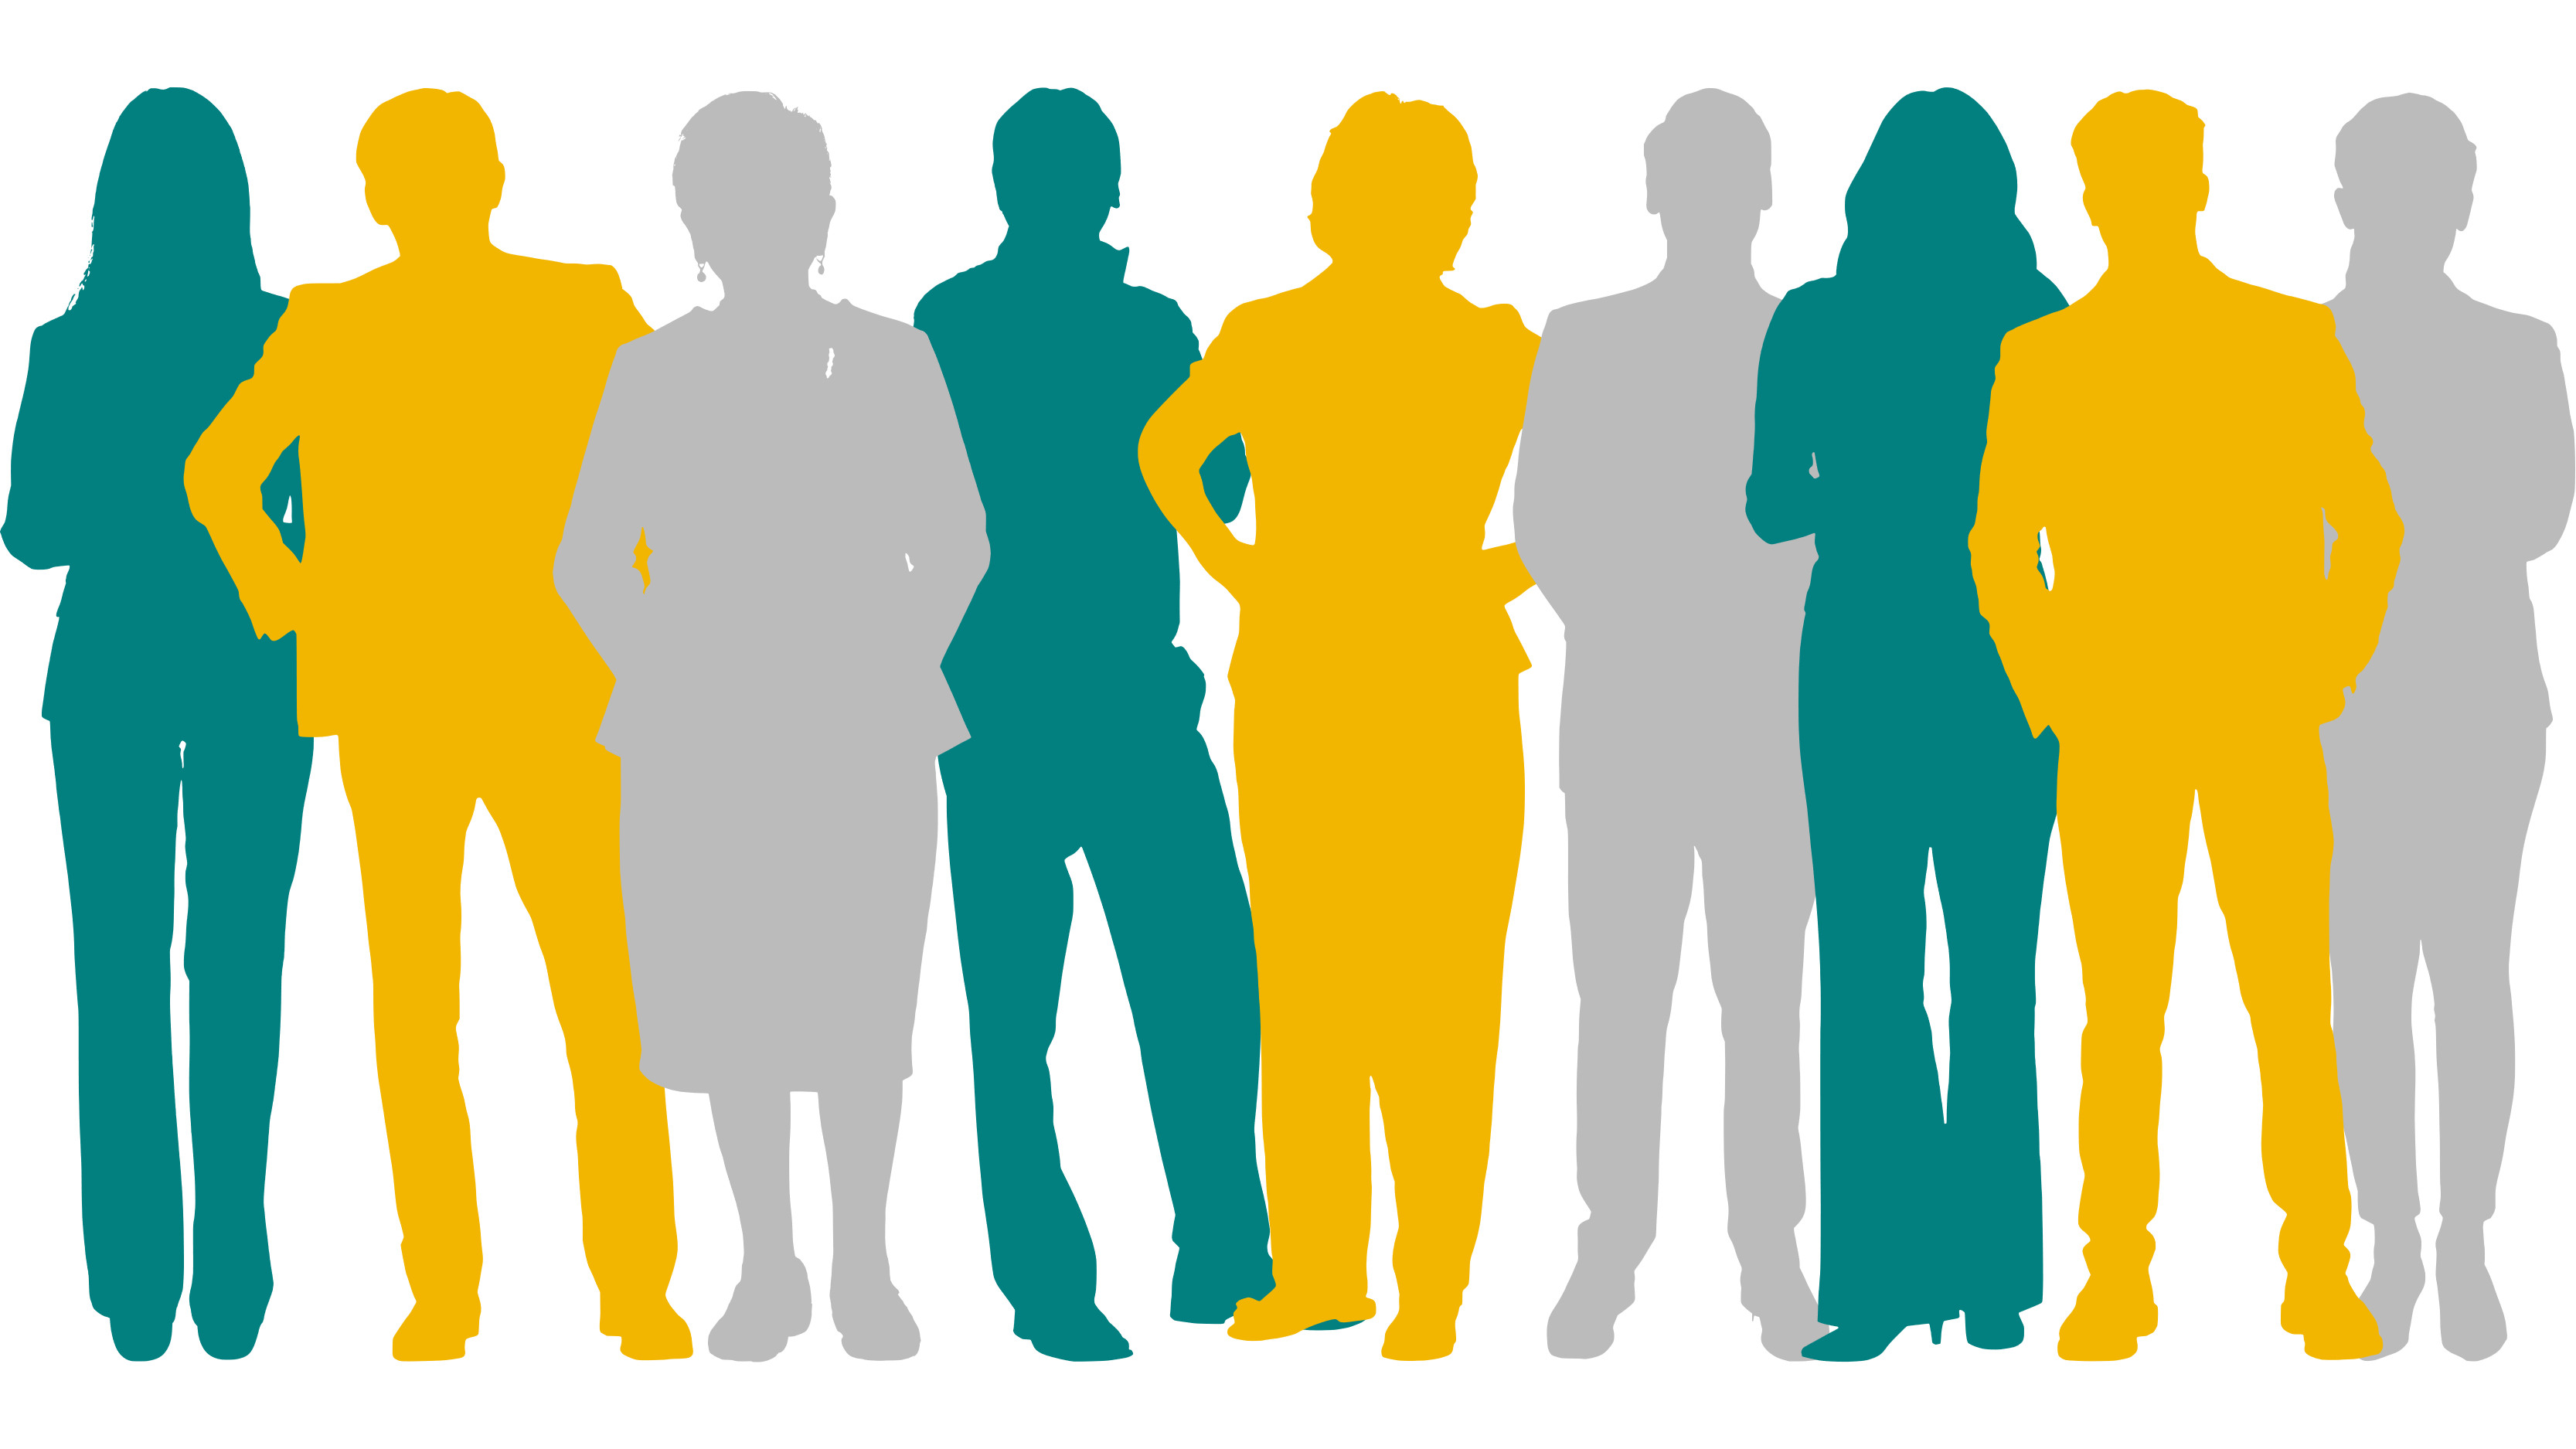 Group of slightly overlapping coloured silhouettes